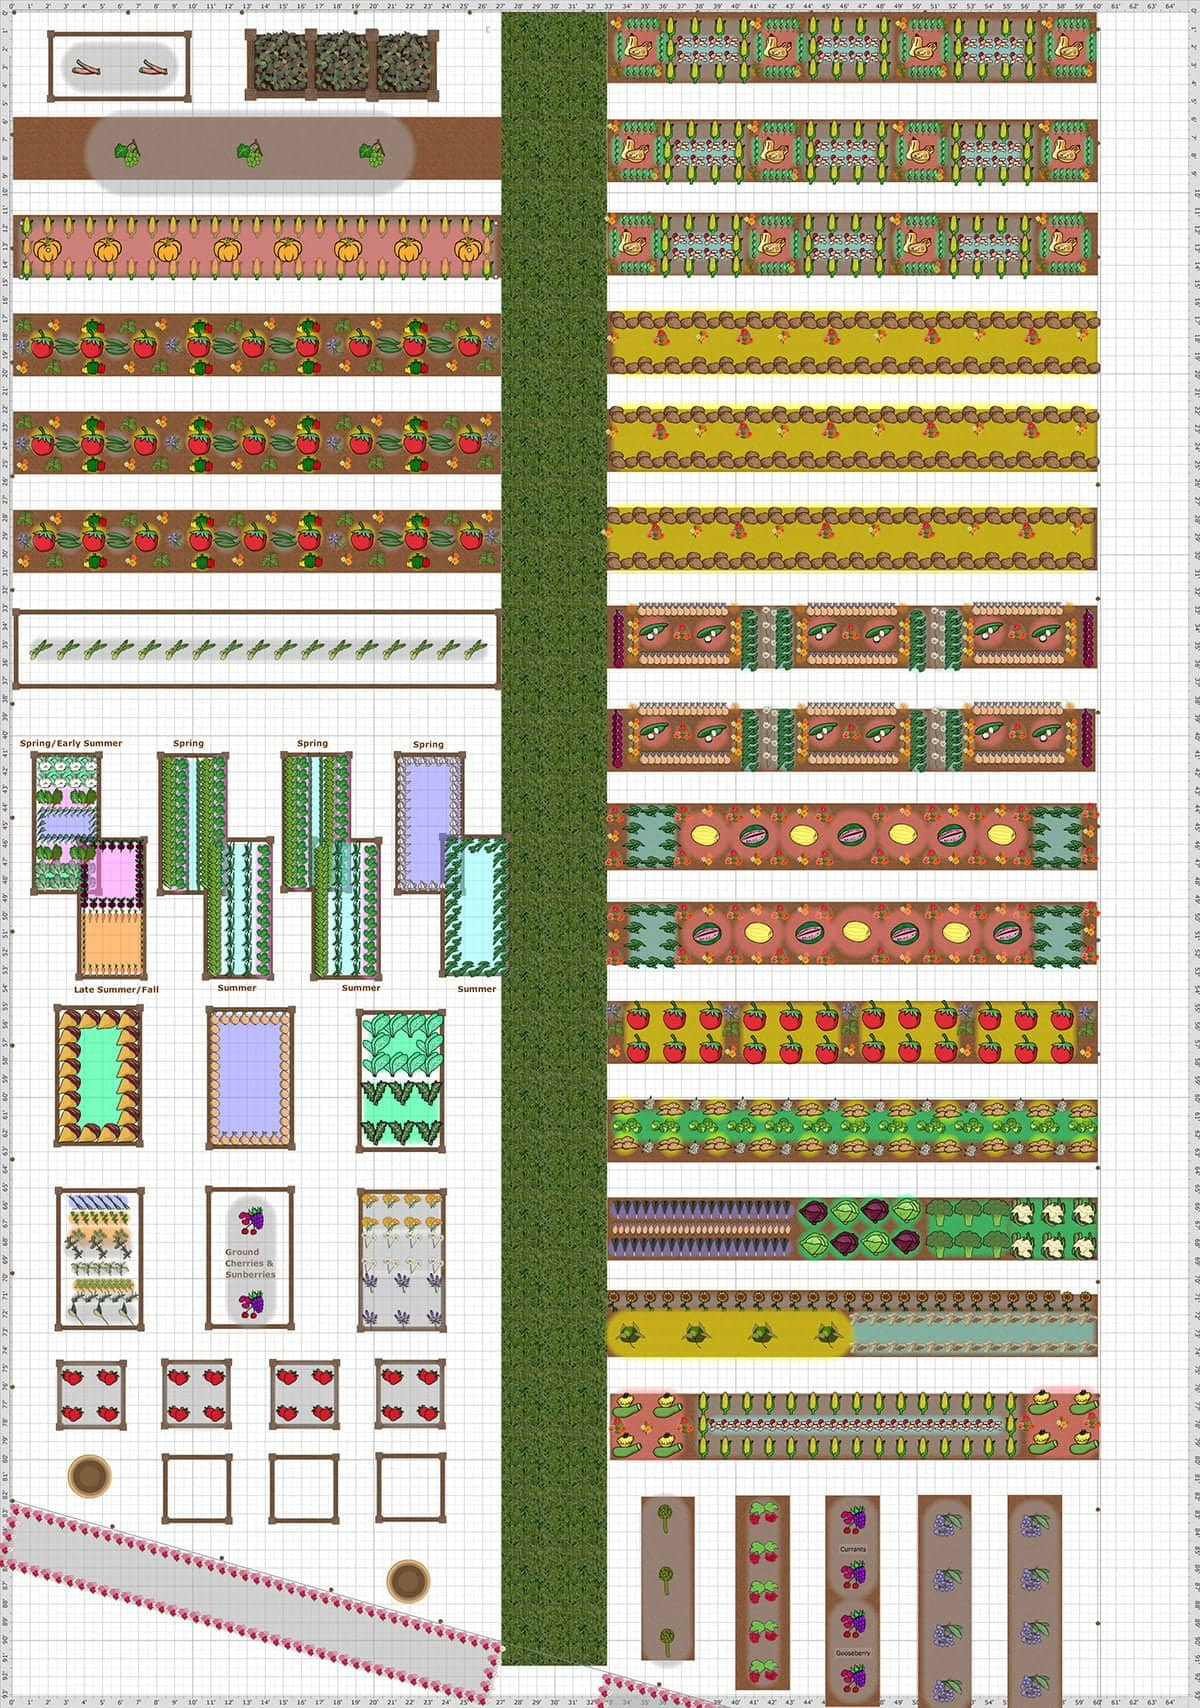 Our 2015 Garden Plan And How We Made It – Spring Garden Planning